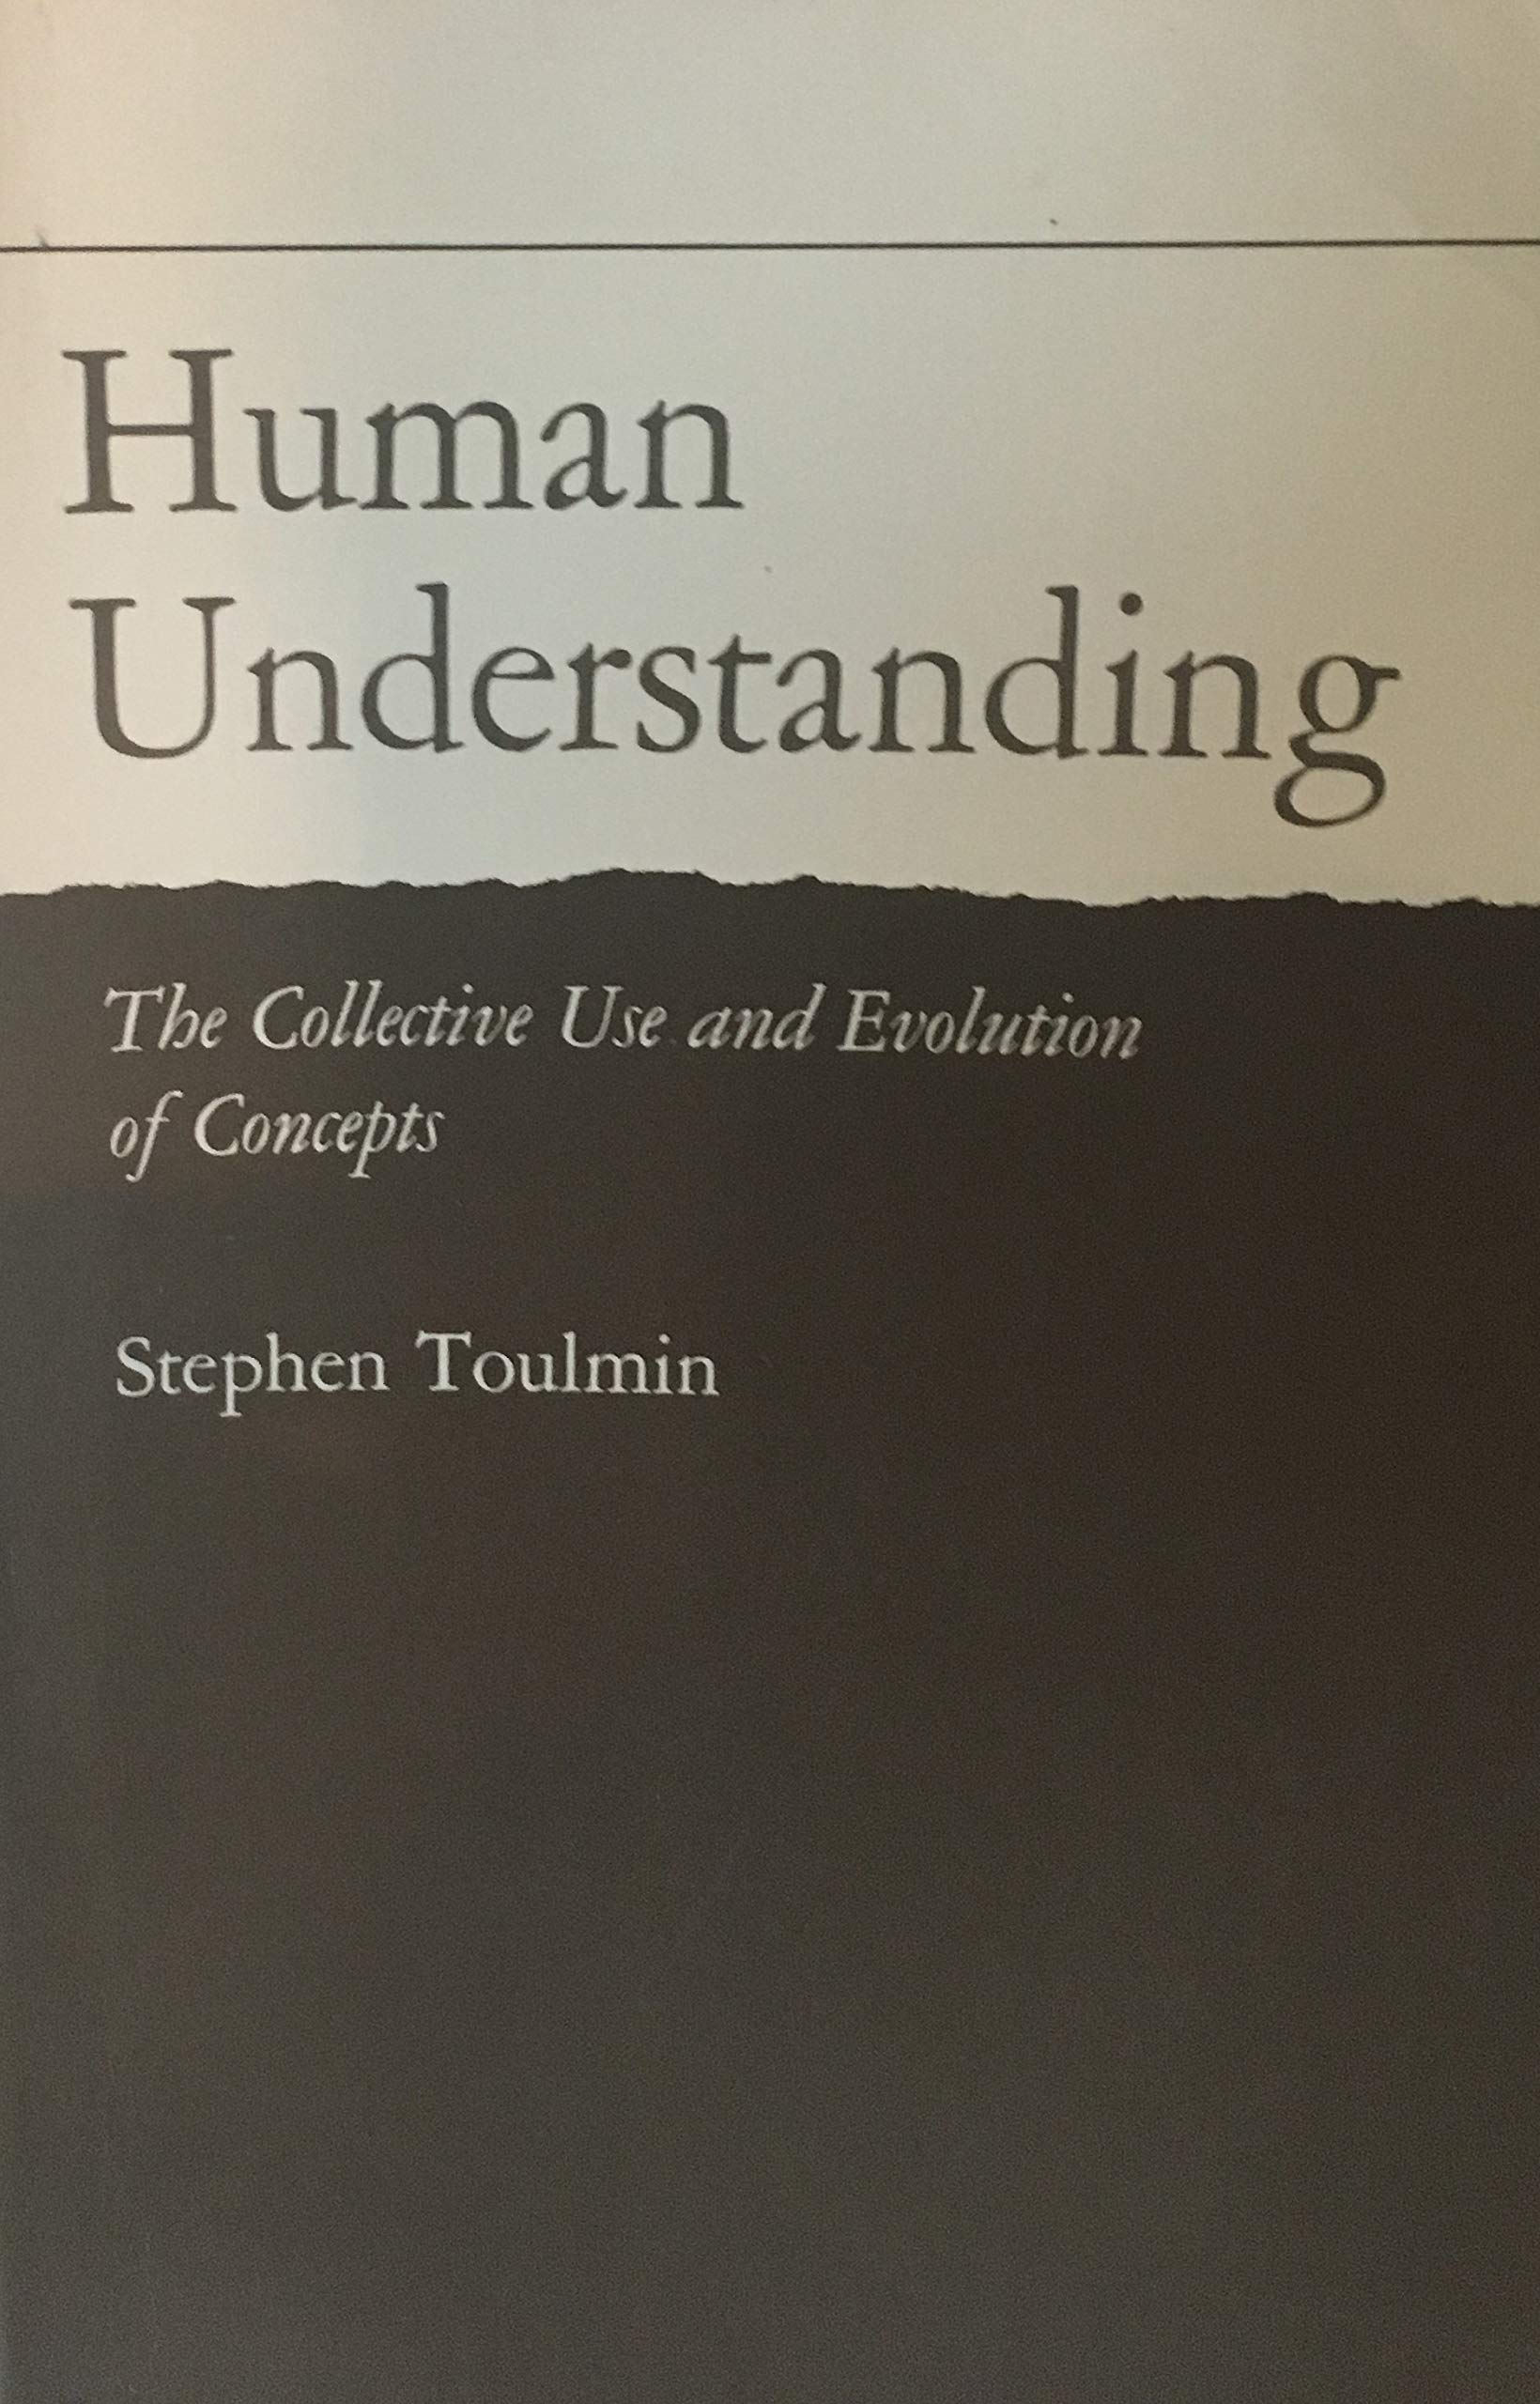 Human Understanding, Volume I: The Collective Use and Evolution of Concepts, Toulmin, Stephen Edelston